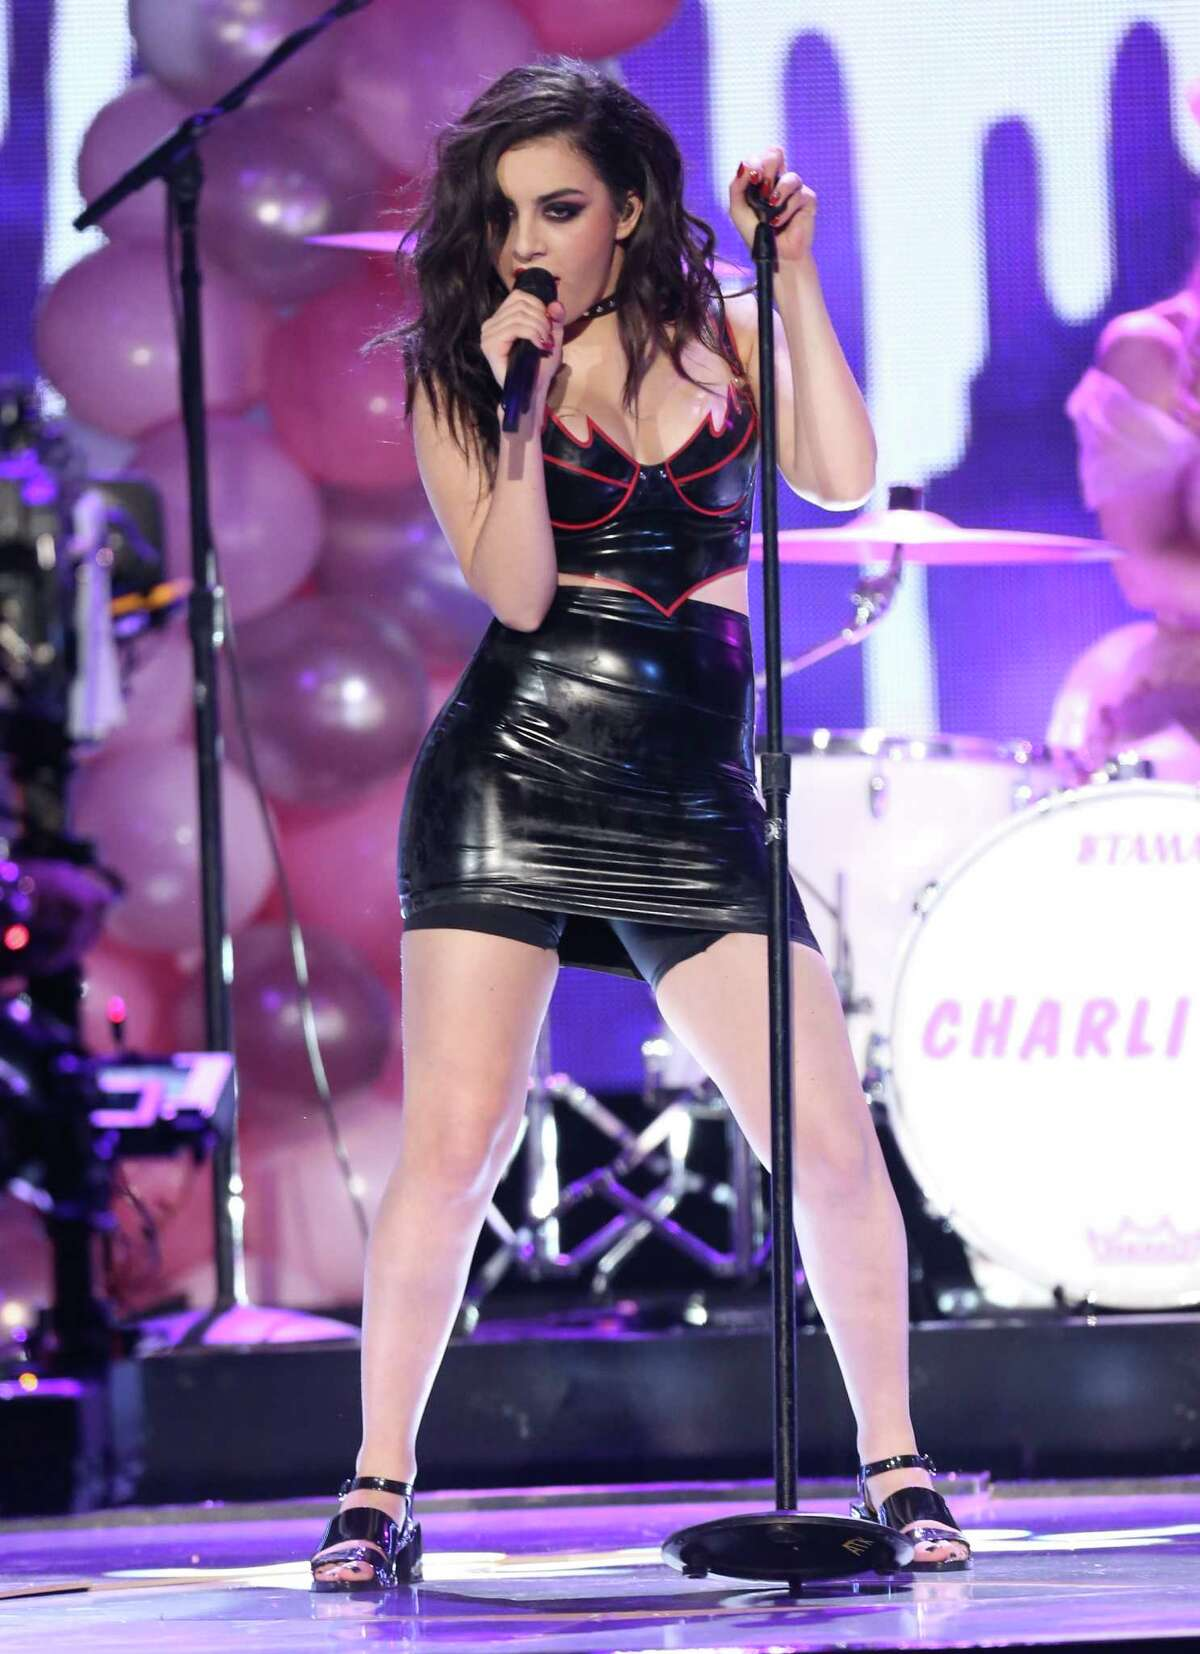 Charli XCX performs on stage at the 42nd annual American Music Awards at Nokia Theatre L.A. Live on Sunday, Nov. 23, 2014, in Los Angeles.